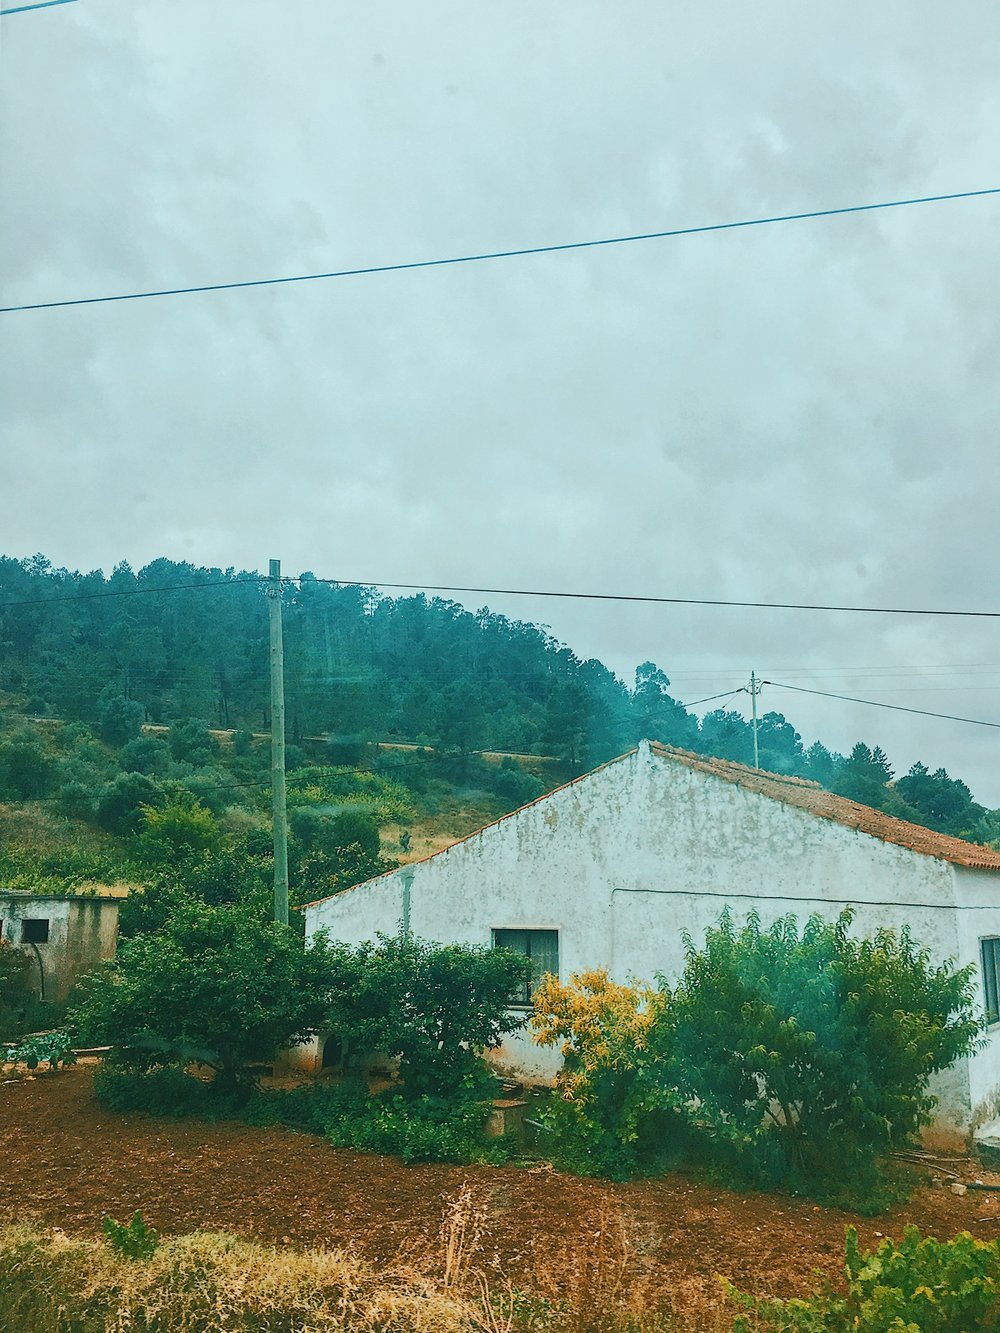 I watched the countryside and several small towns go by from my seat on the train to Faro